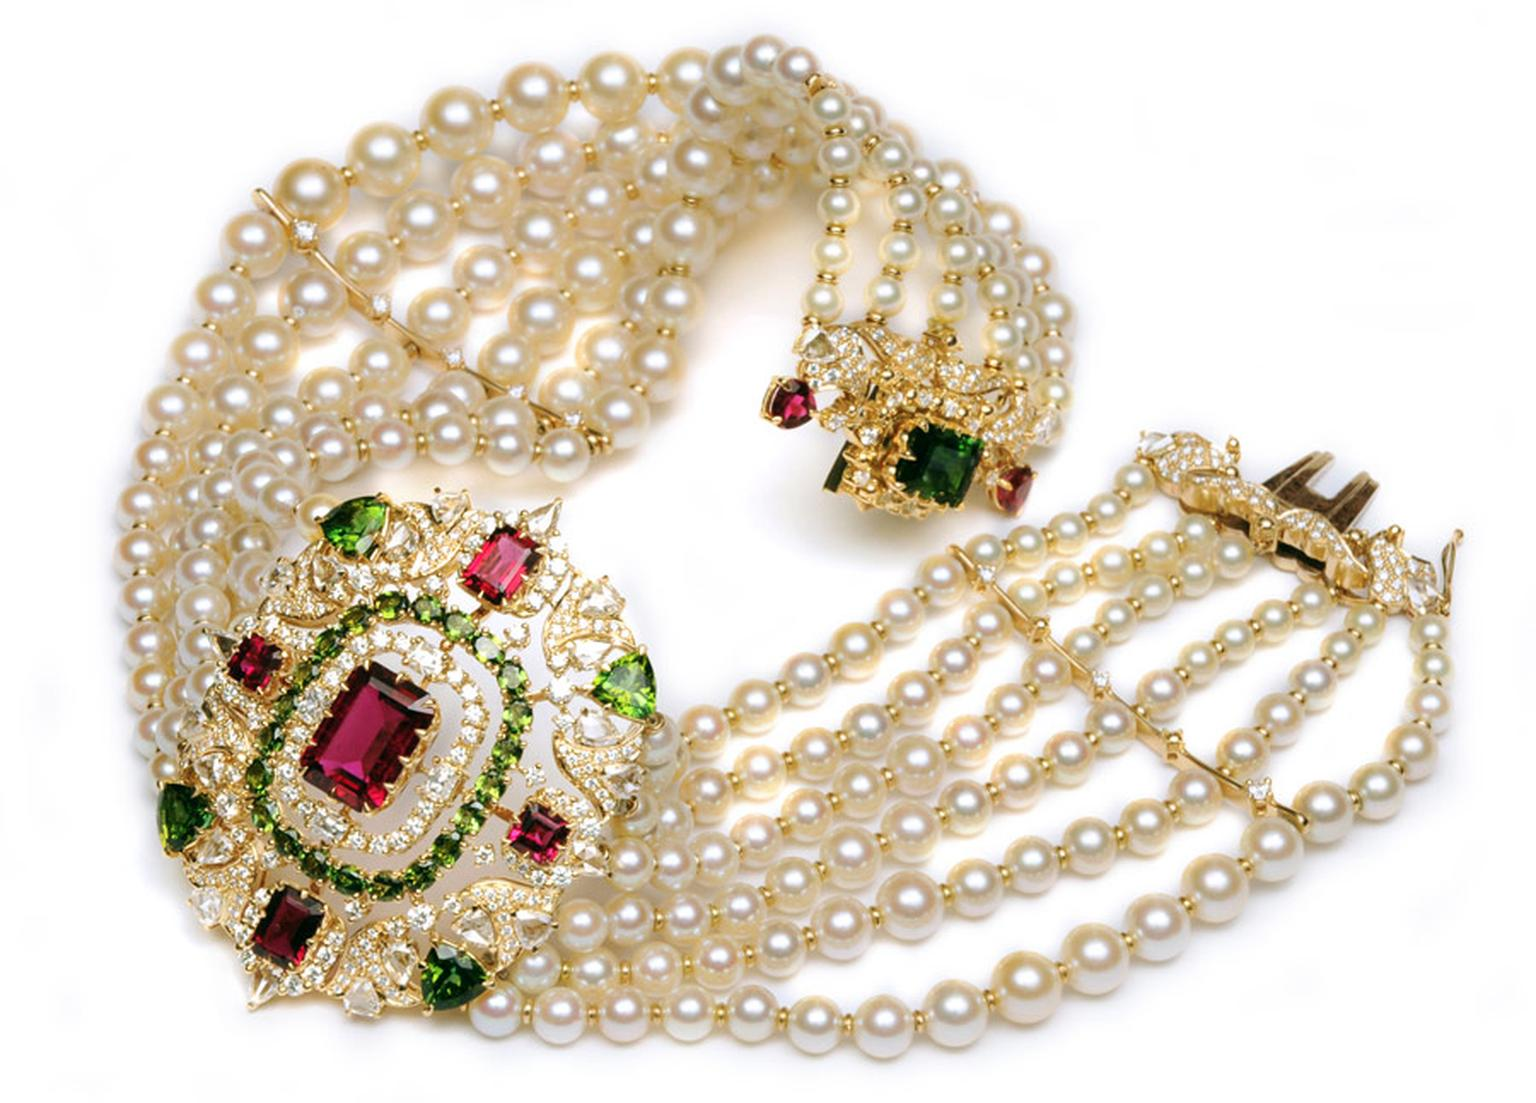 03-Choker---Nizam-collection-Ganjam.jpg